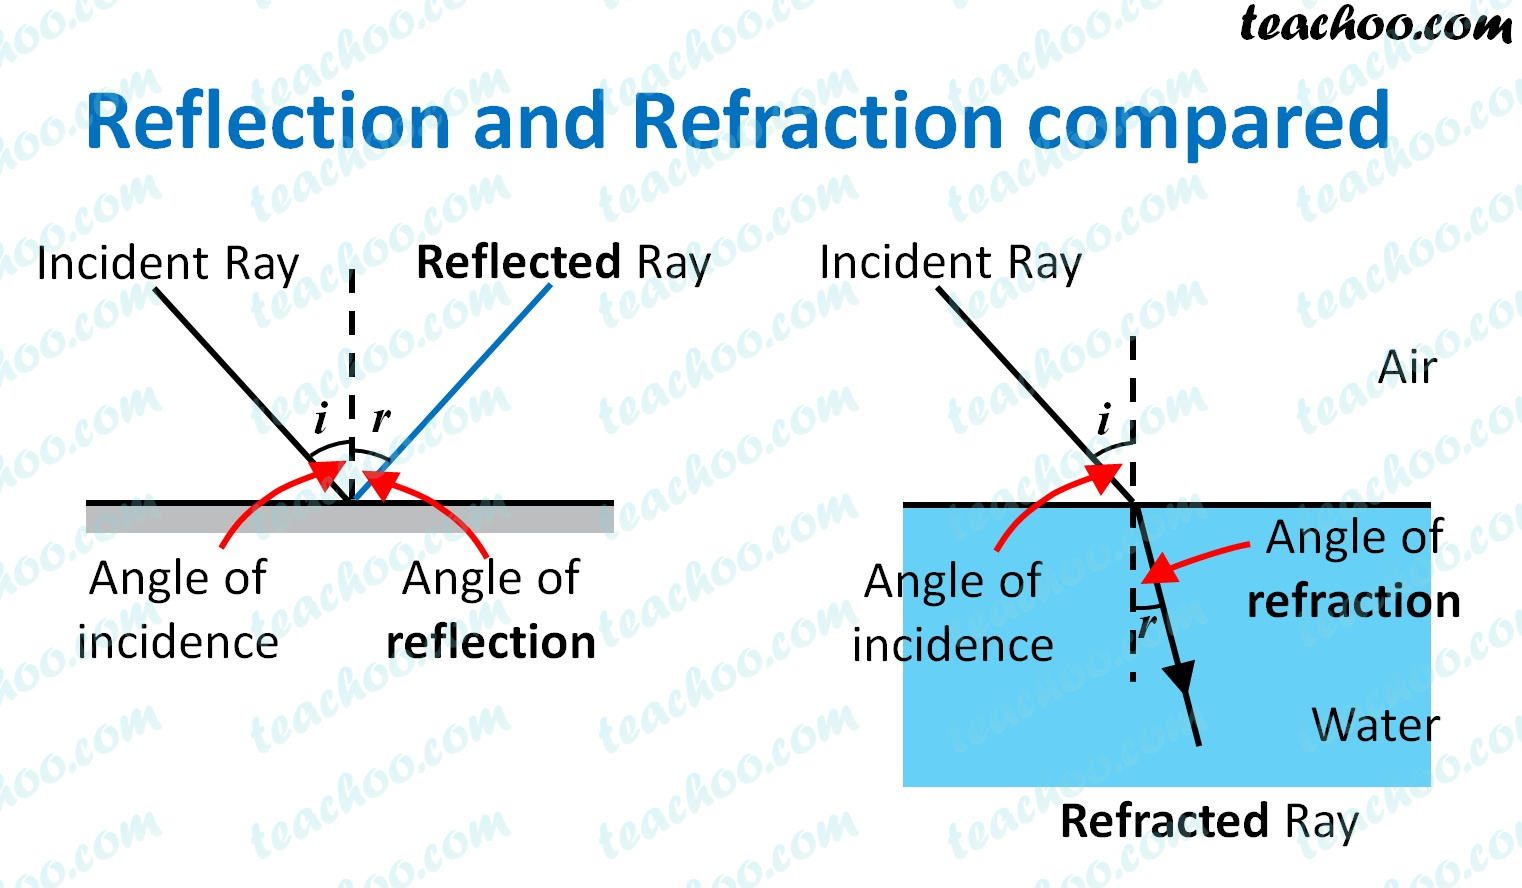 reflection-and-refraction-compared---teachoo.jpg